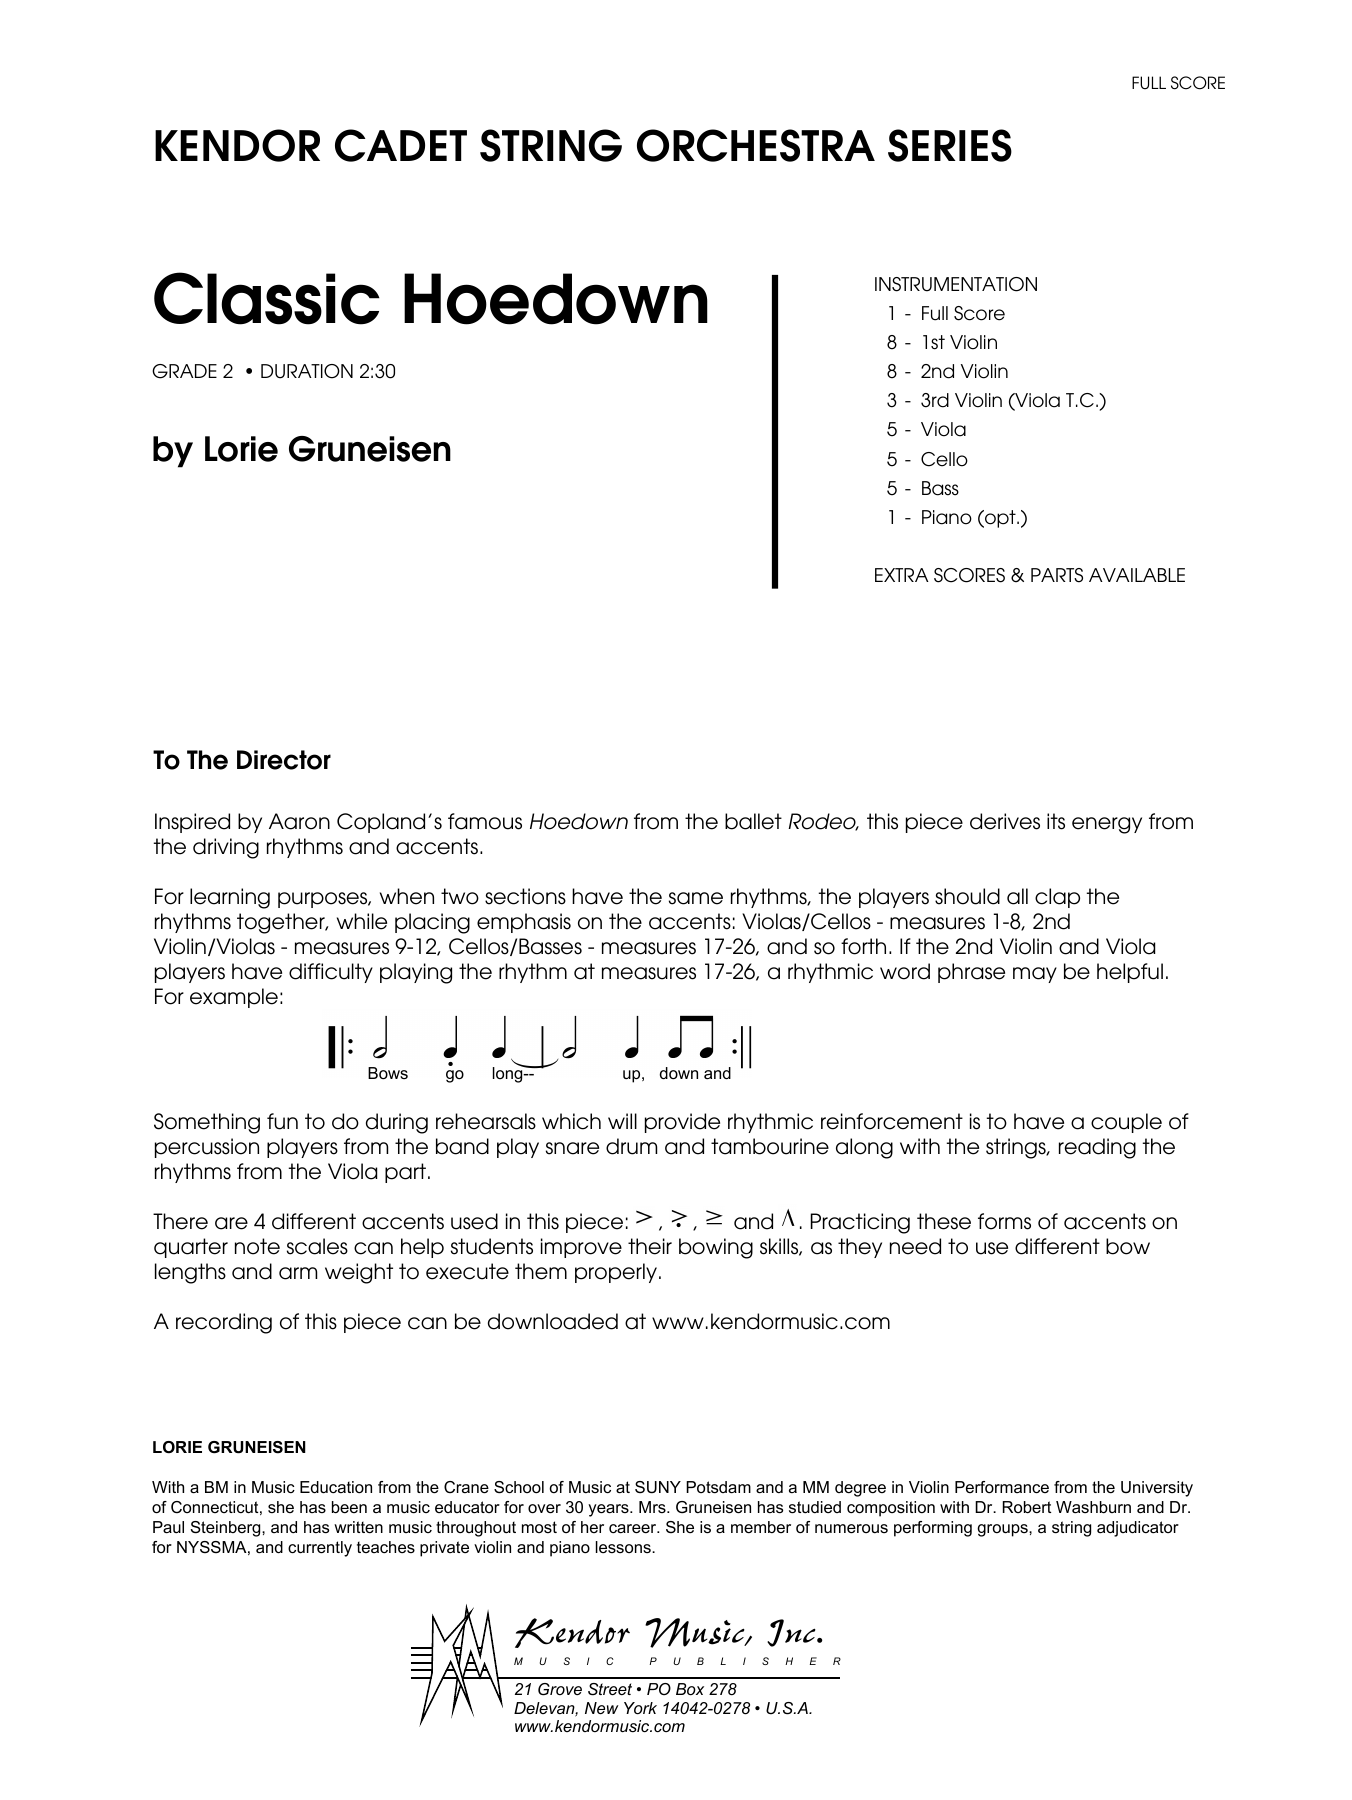 Classic Hoedown (COMPLETE) sheet music for orchestra by Lorie Gruneisen. Score Image Preview.